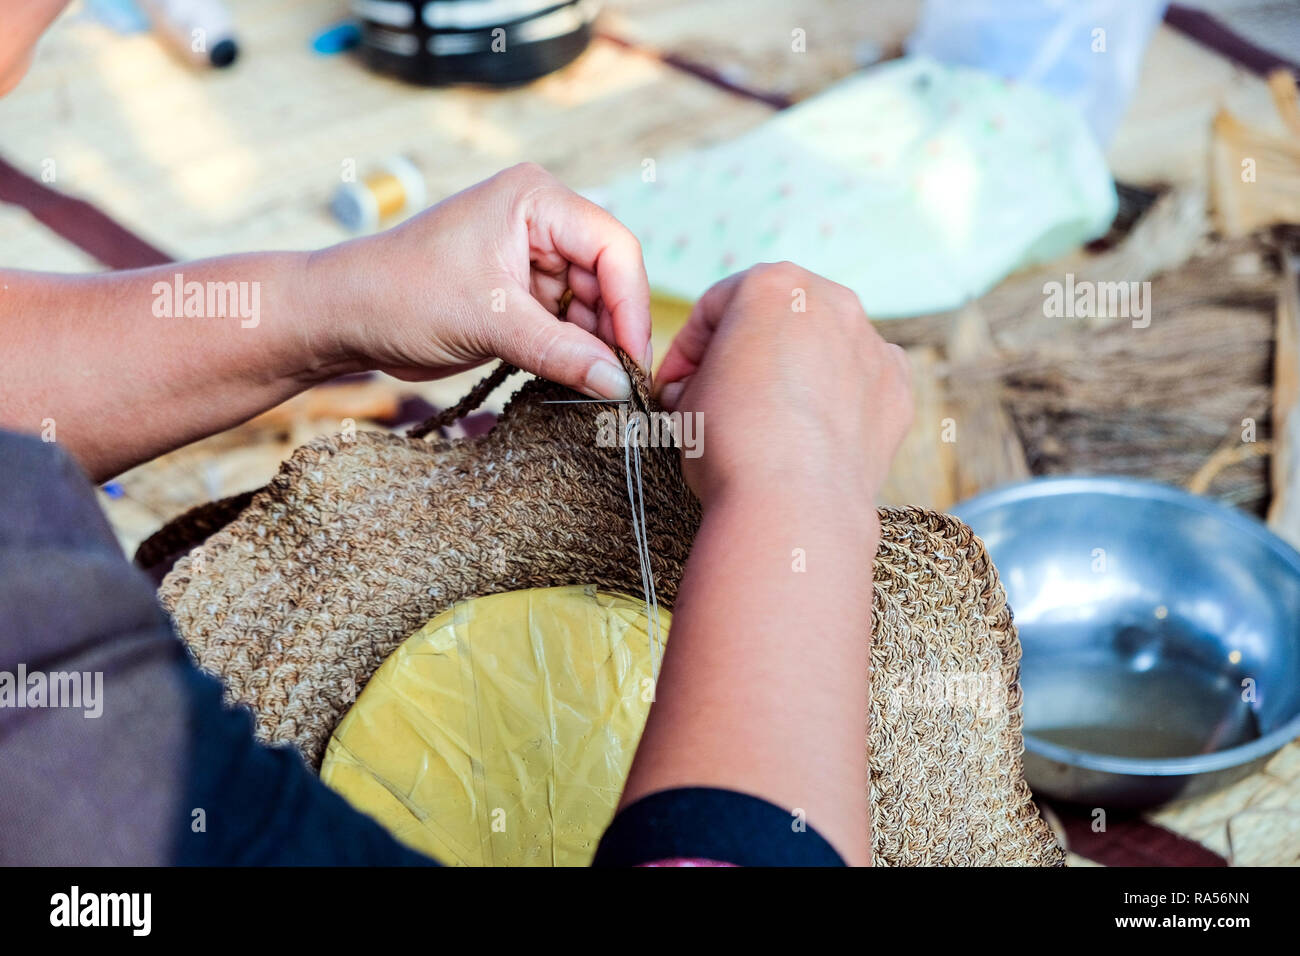 Hands of Thai female artisans is using a needle weaving sew hat that woven comes from plants. - Stock Image